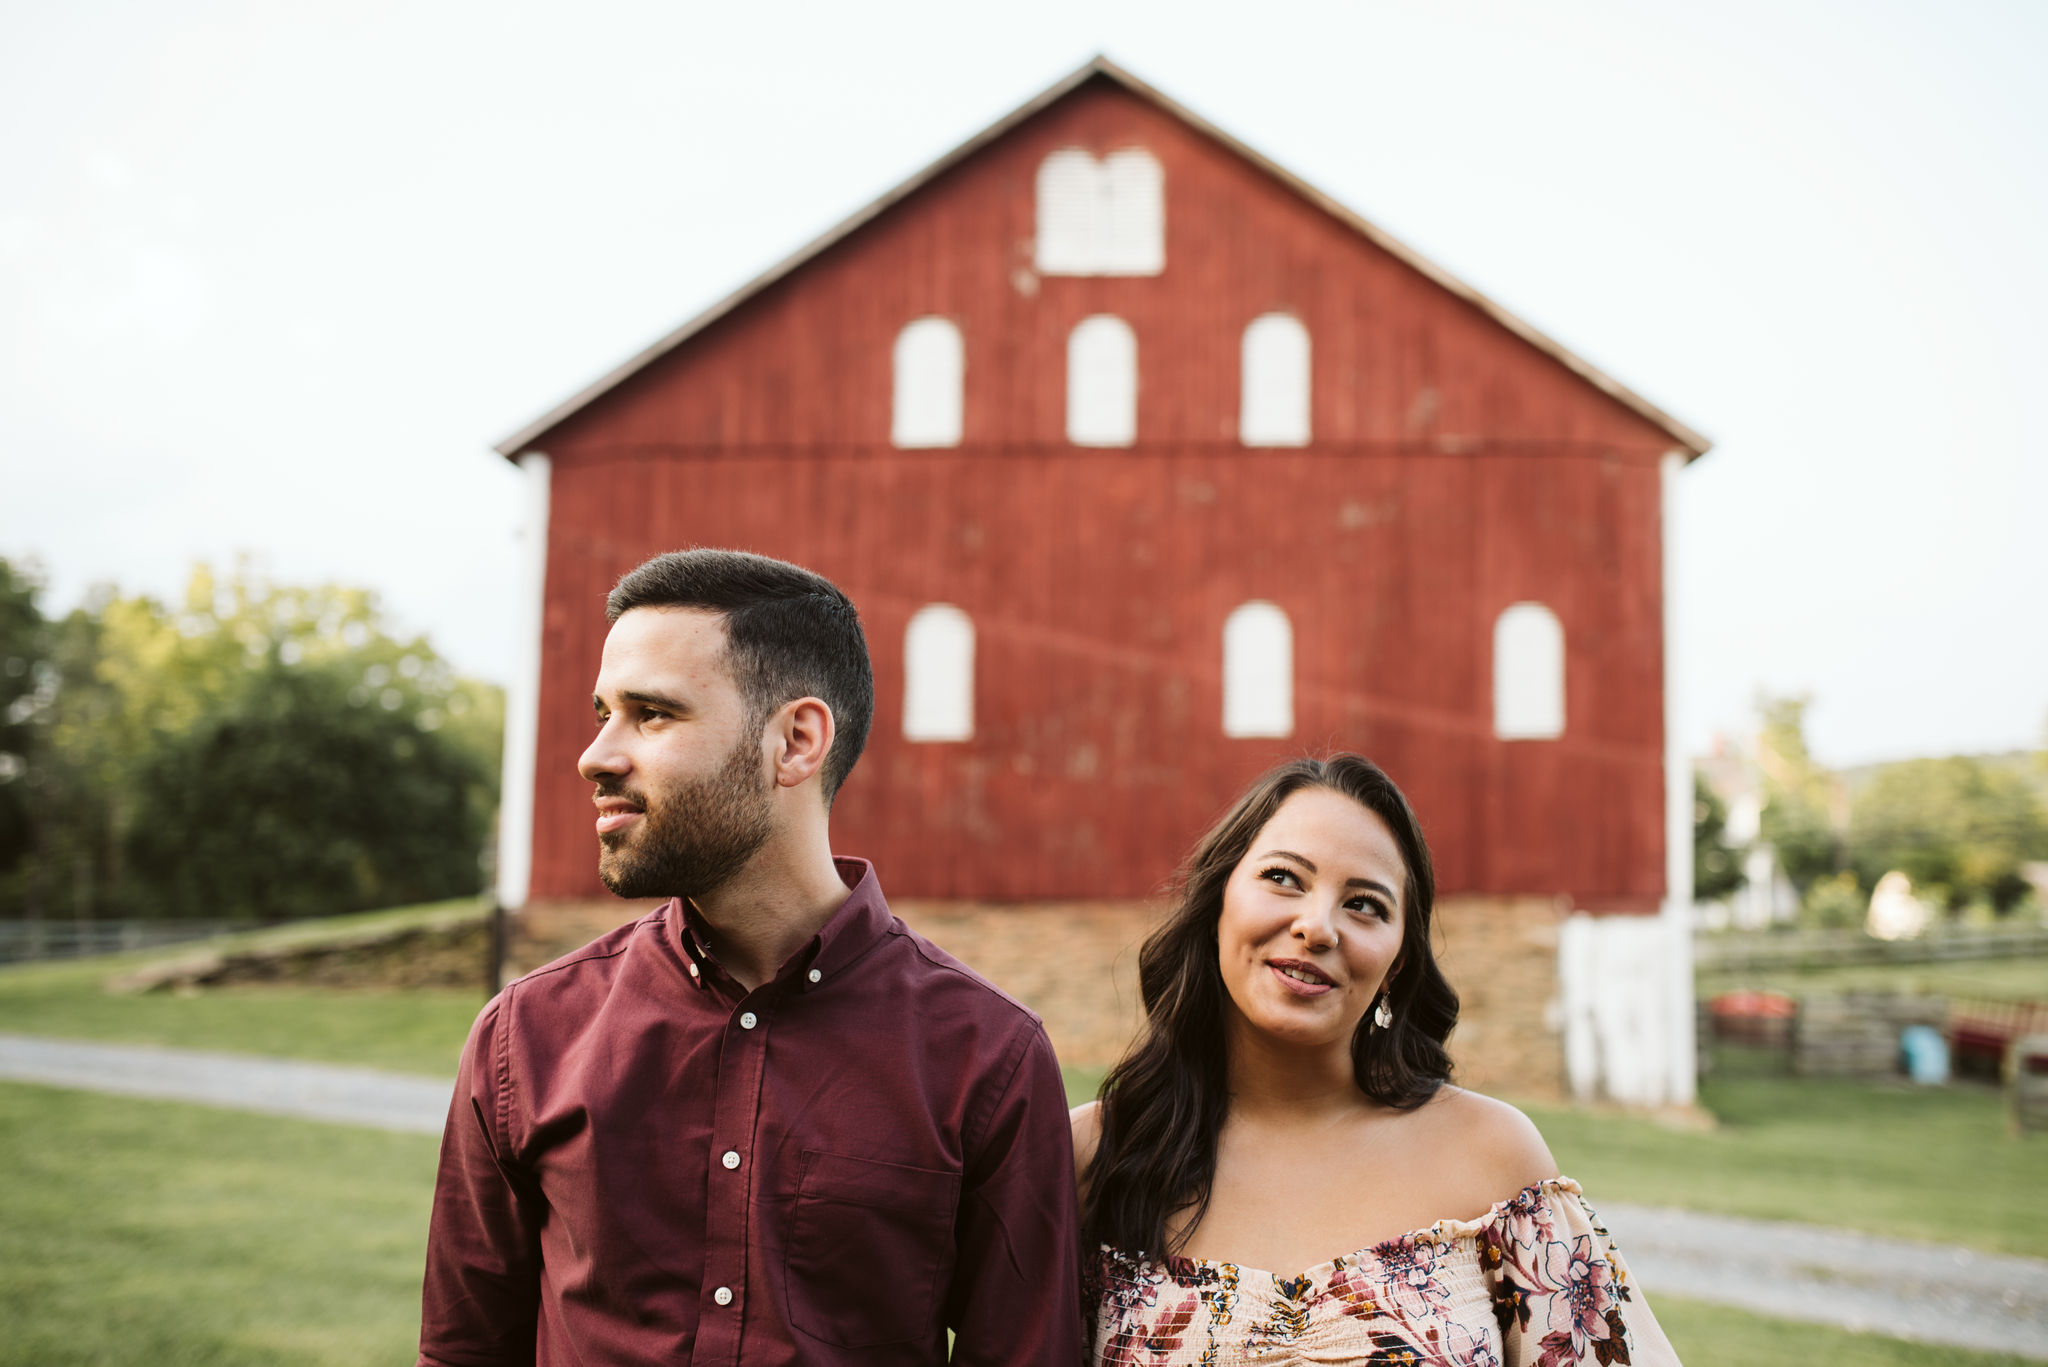 Frederick Maryland, Baltimore Wedding Photographer, Engagement, Bend in the River Farm, Outdoor, Rustic, Nature, Sweet Photo of Bride and Groom in Front of Barn